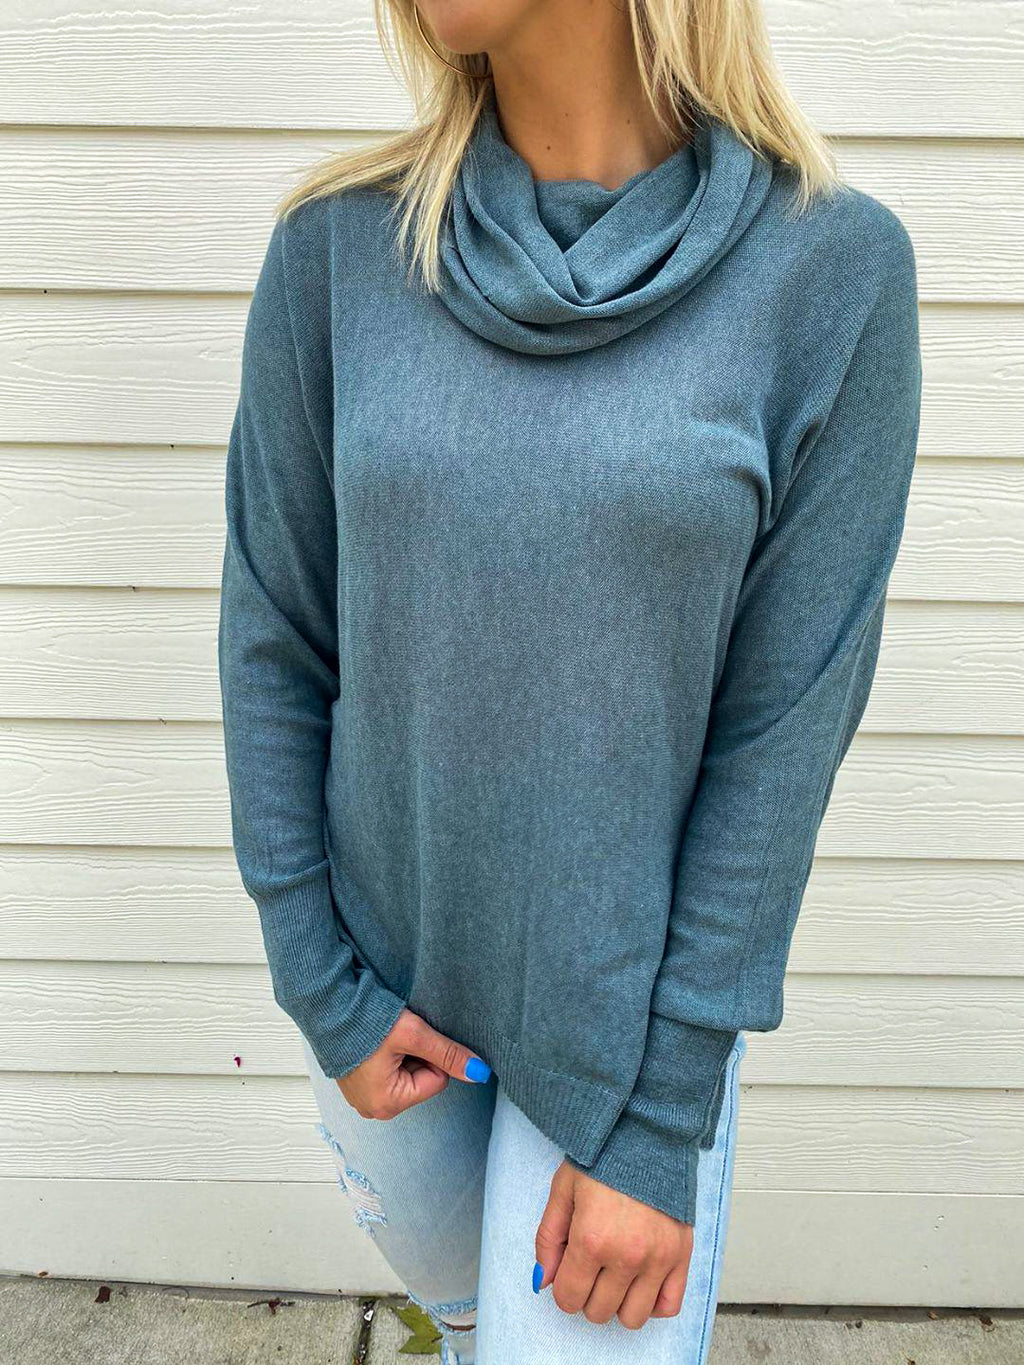 "<img src=""Soft-Cowl-Neck-Sweater-Teal-Front.jpg"" alt=""soft cowl neck sweater in teal front view"">"